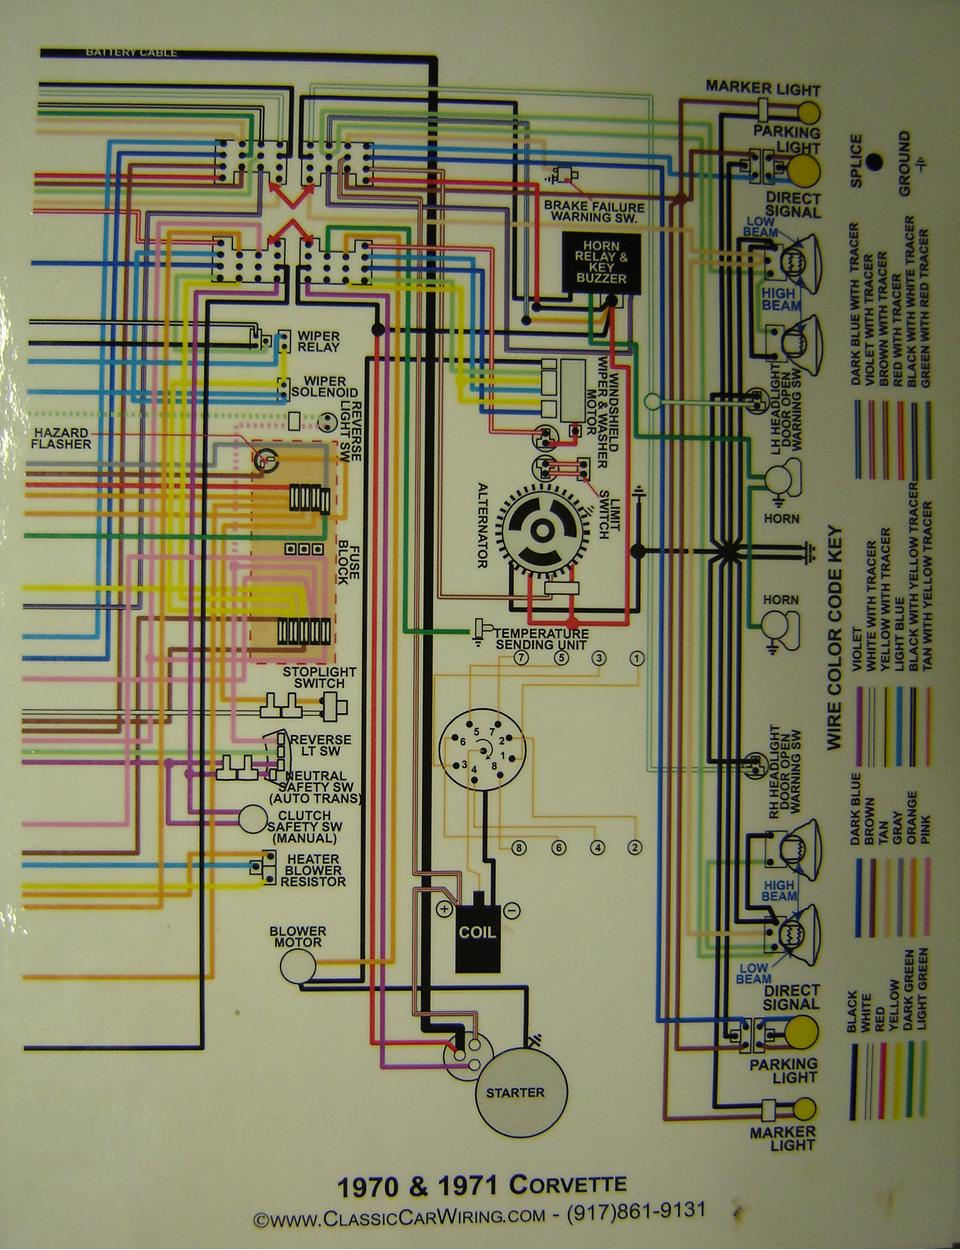 Corvette Color Wiring Diagram B on 1965 chevy impala wiring diagram